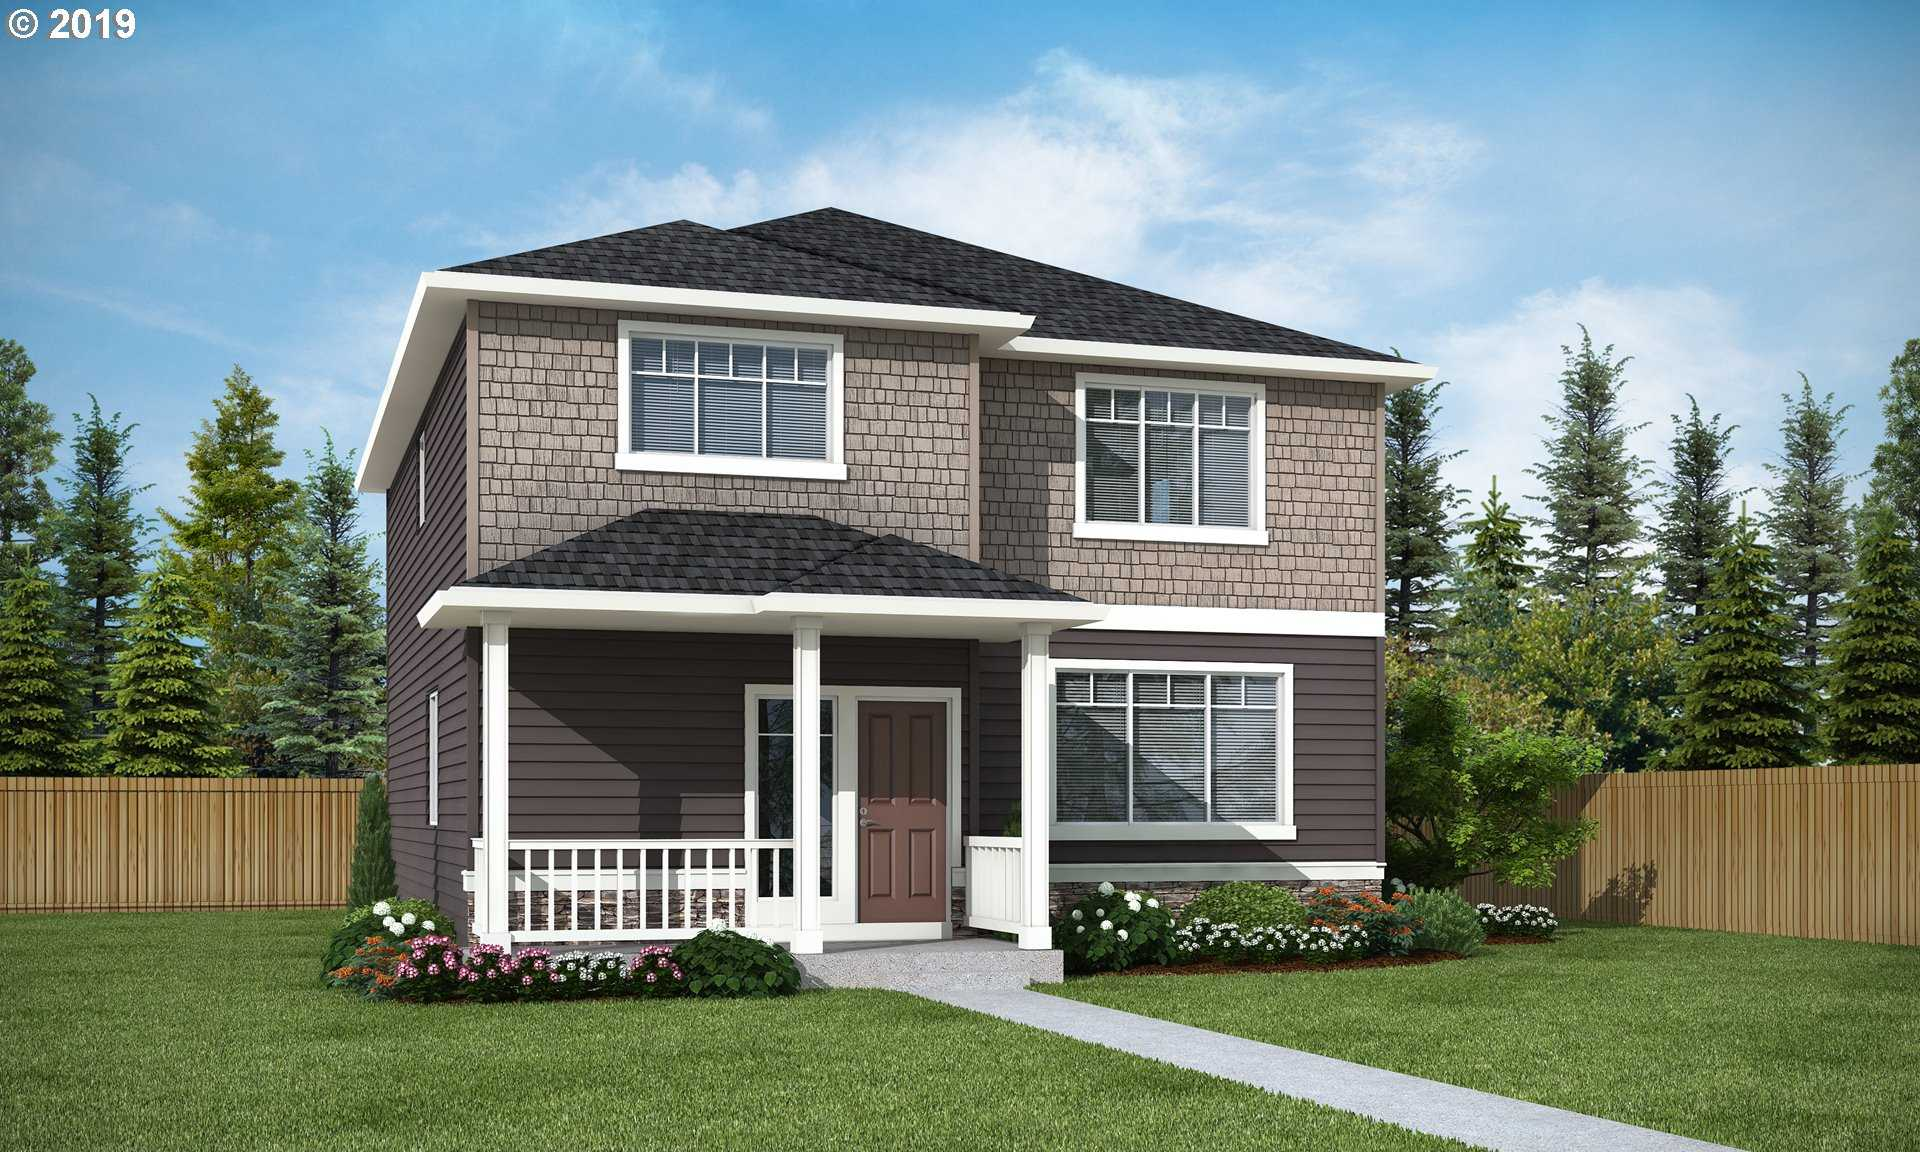 $396,995 - 4Br/3Ba -  for Sale in Trails At Rock Creek, Happy Valley